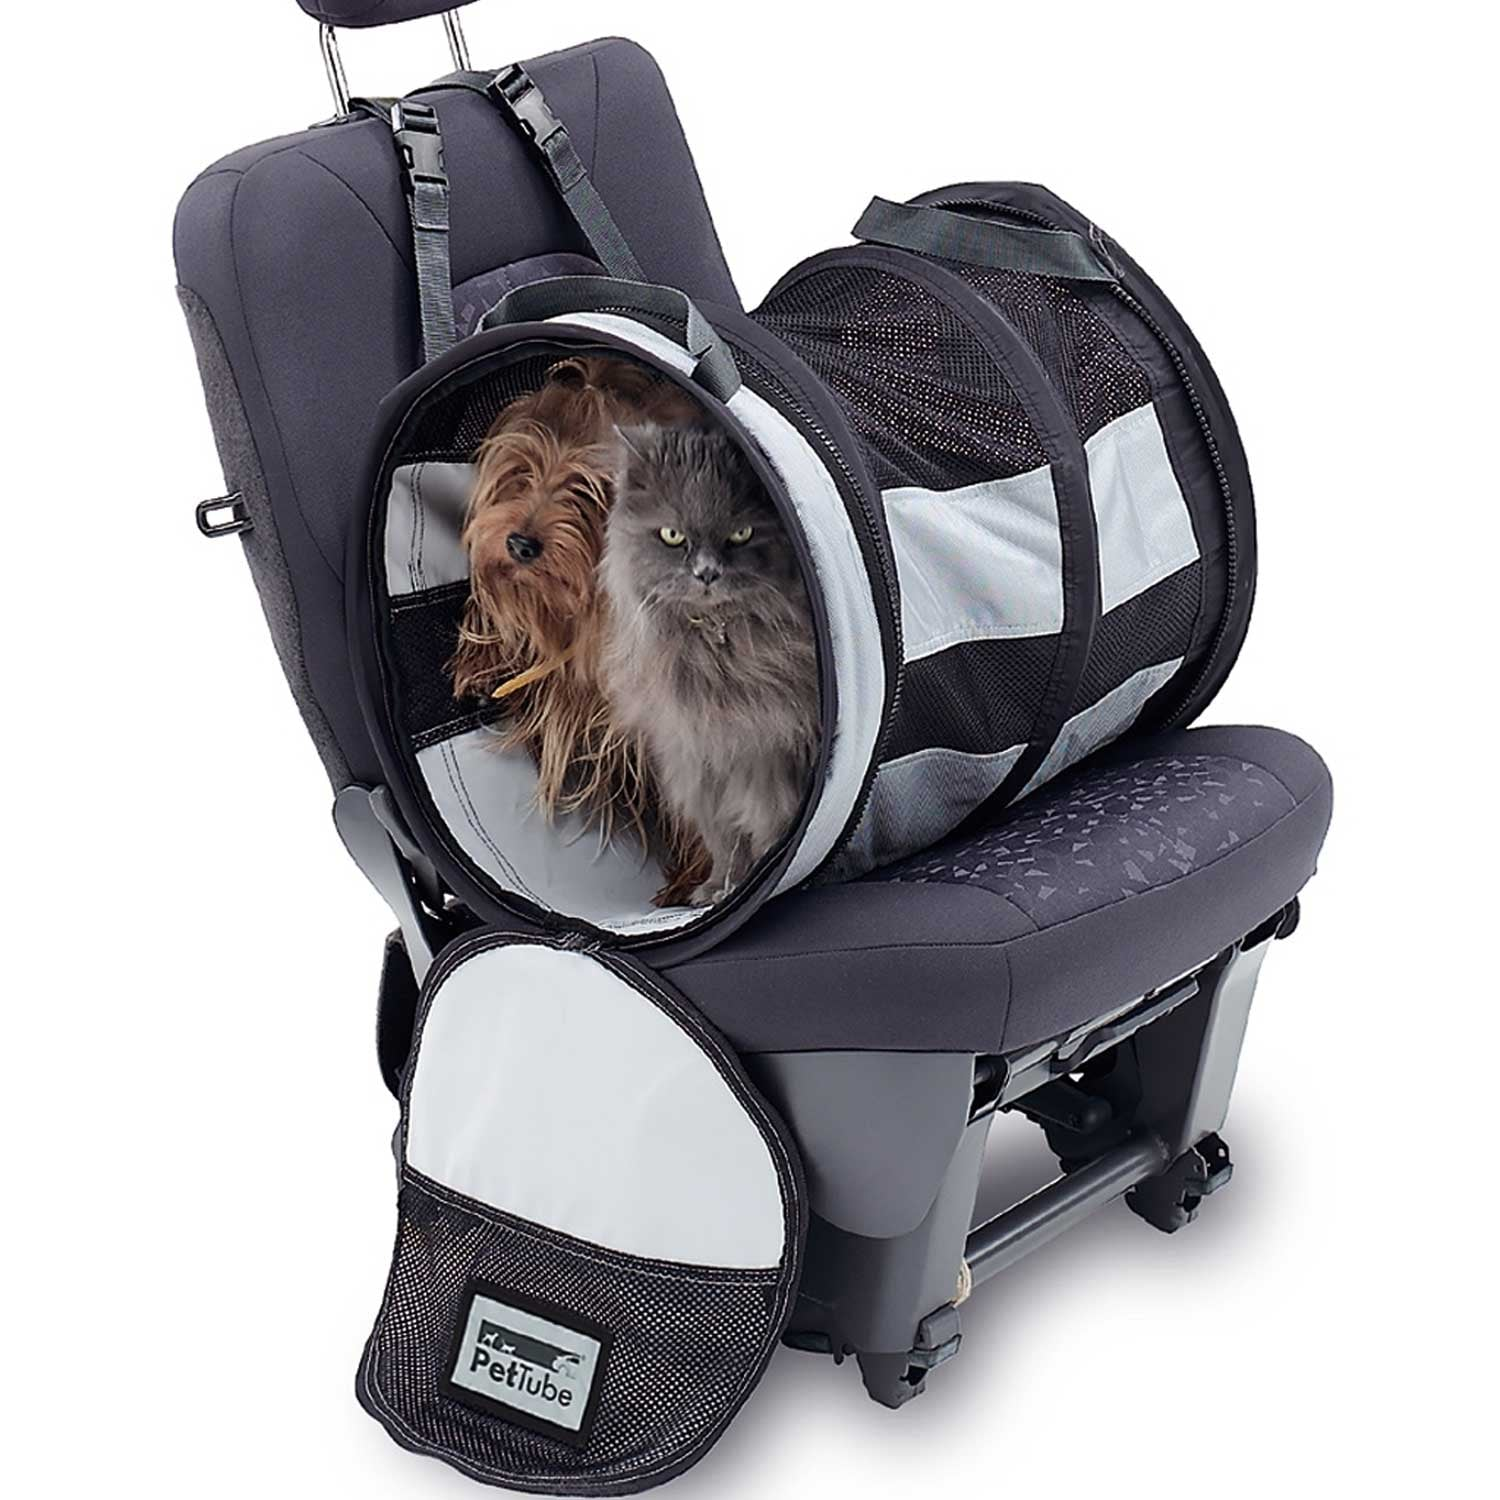 A Cat Carrier